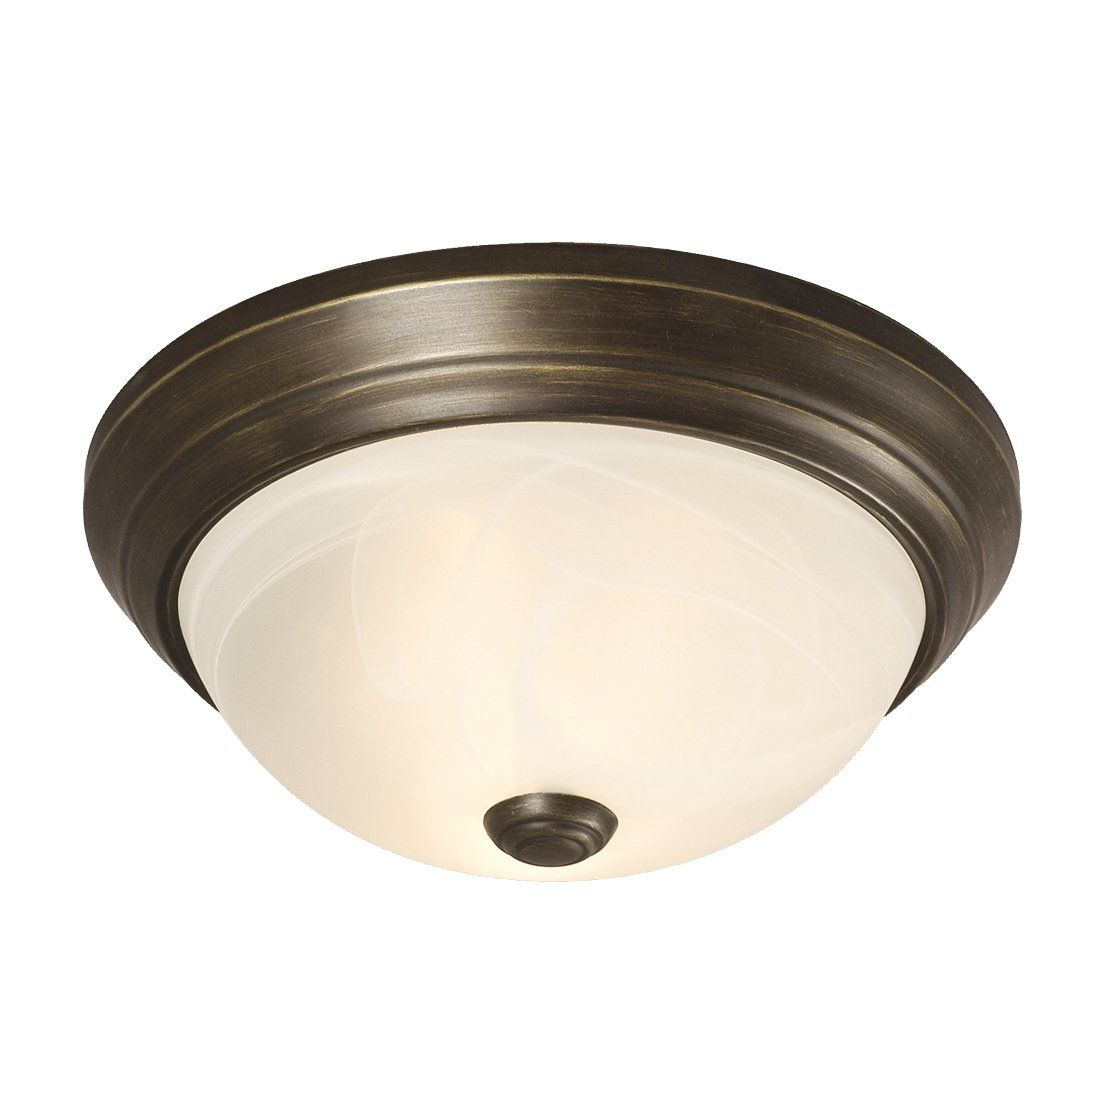 Galaxy Quoizel Galaxy Lighting 11 125 In Oil Rubbed Bronze Flush Mount Light Flush Mount Lighting Galaxy Lights Ceiling Lights